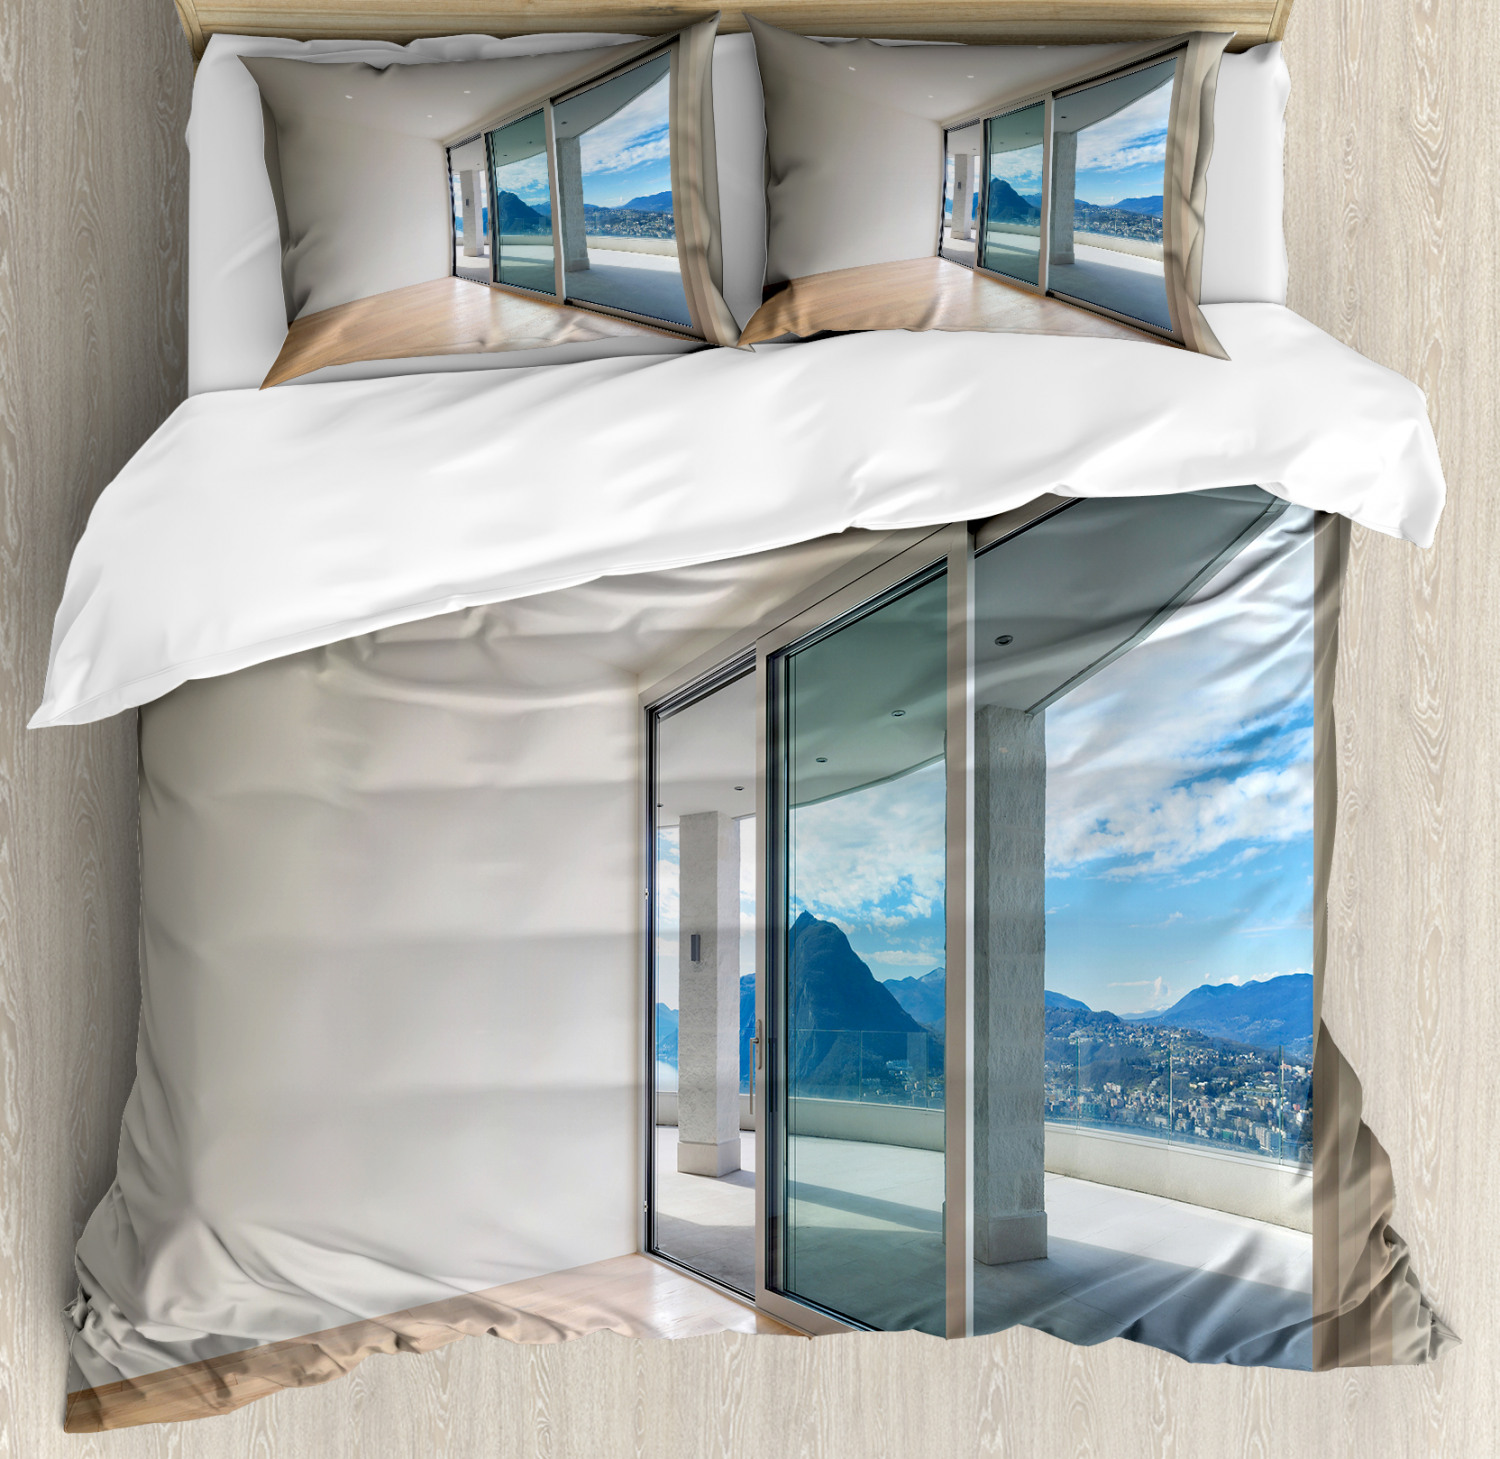 Room Duvet Cover Set with Pillow Shams Penthouse Terrace Print